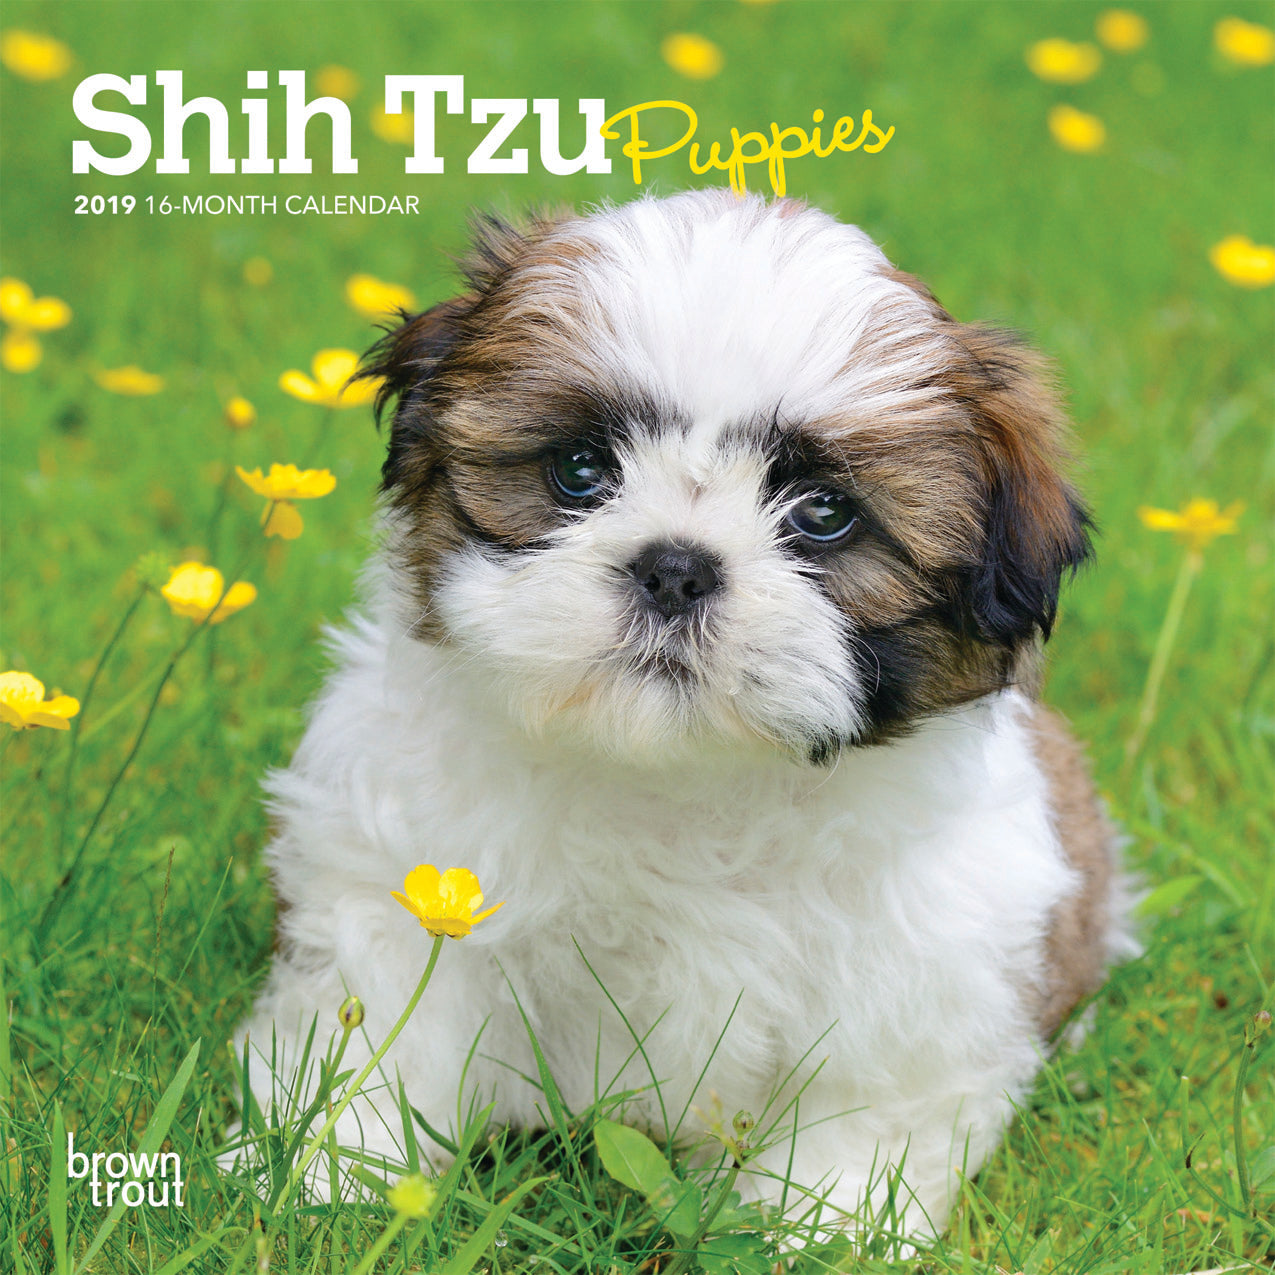 Shih Tzu Puppies 2019 Mini Wall Calendar